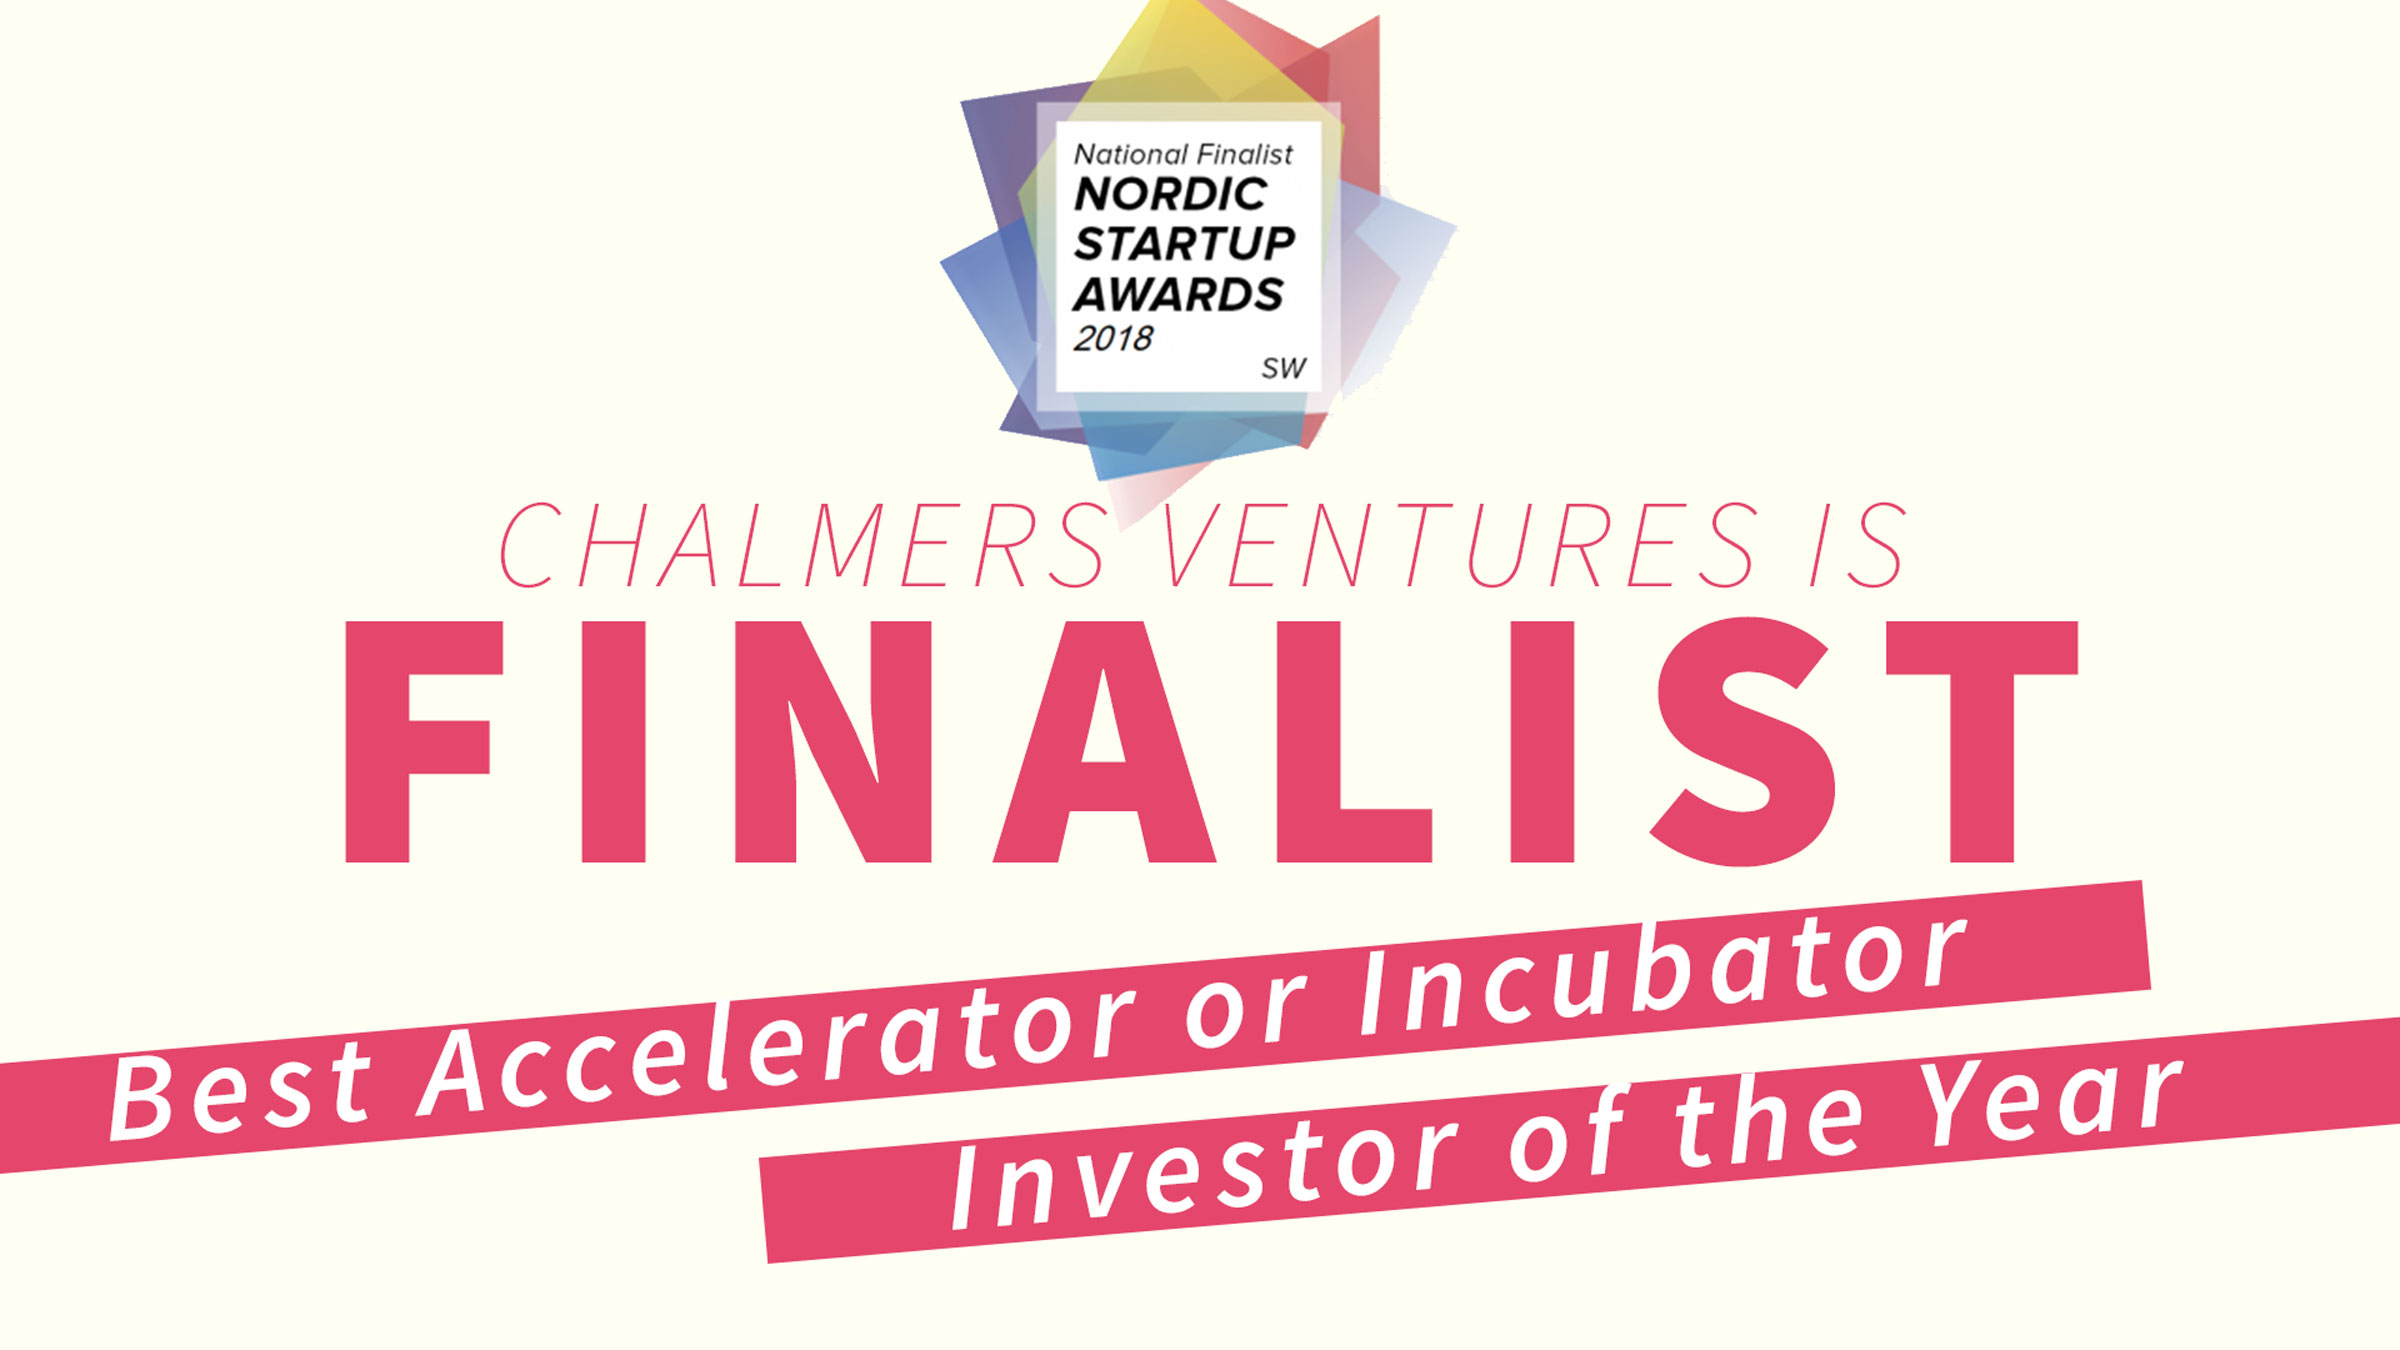 nordic-startup-awards-finalist-chalmers-ventures